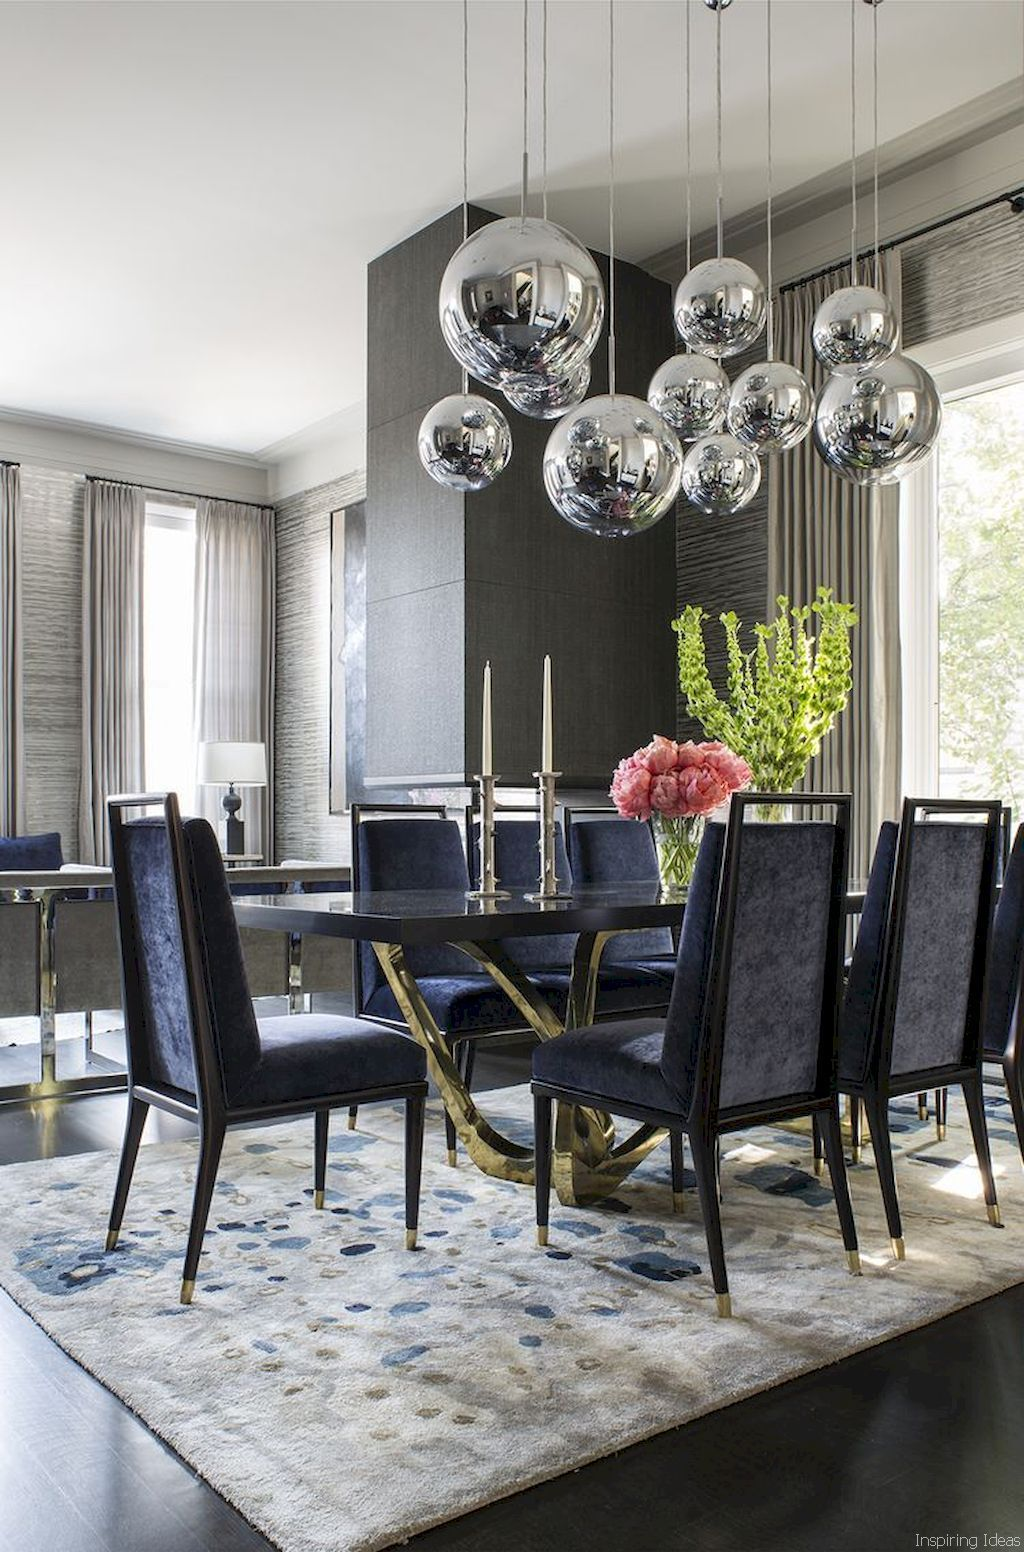 Lighting For Dining Room In 2020 Contemporary Dining Room Design Luxury Dining Room Elegant Dining Room